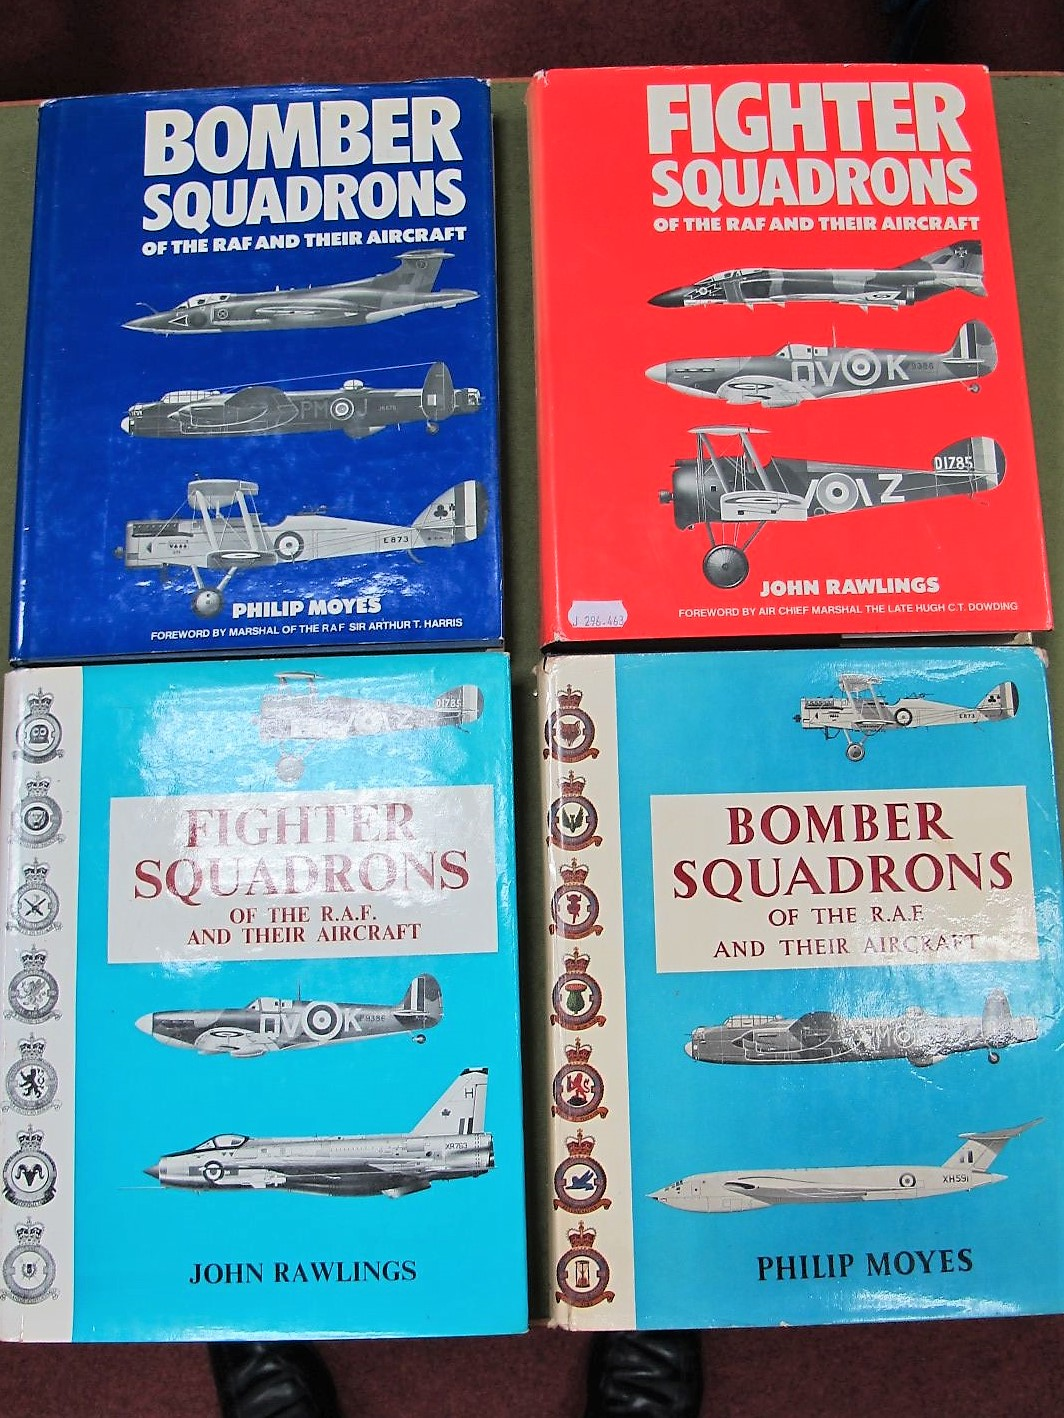 Lot 41 - Four Hardback Books MacDonalds, PBS, Fighter Squadrons of the RAF and Their Aircraft, 1969 and